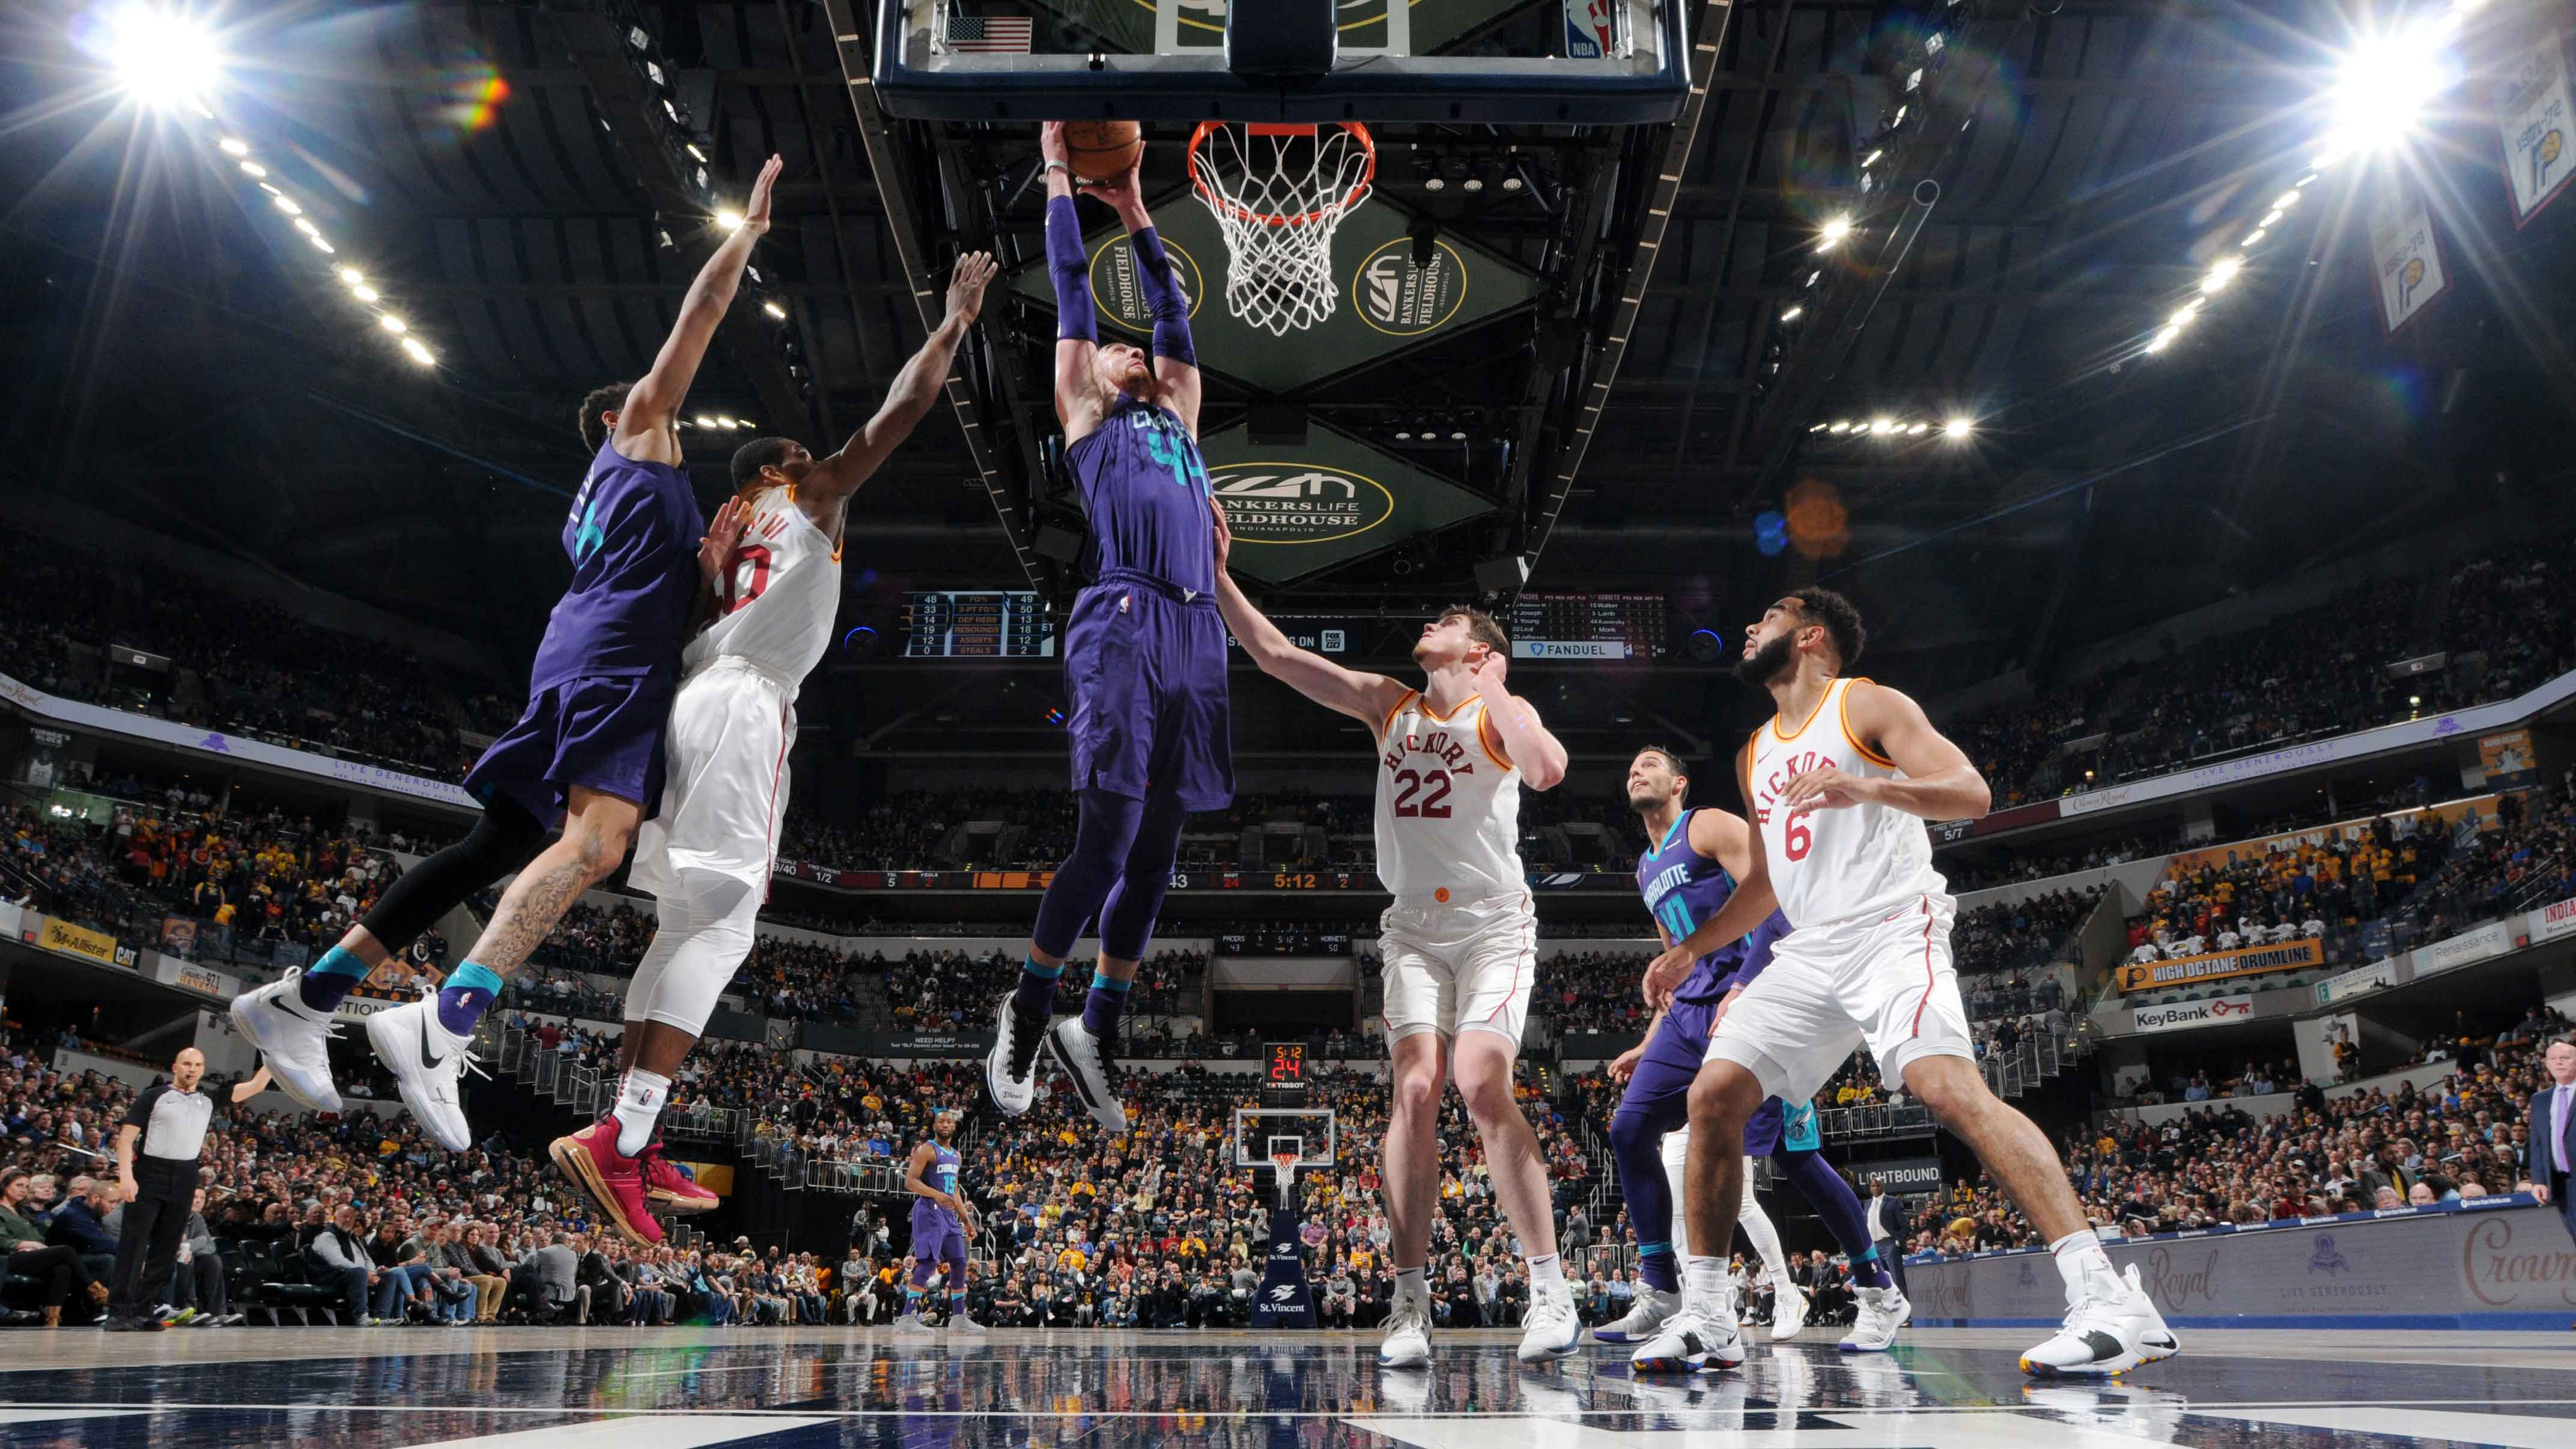 GAME RECAP: Hornets 119, Pacers 93